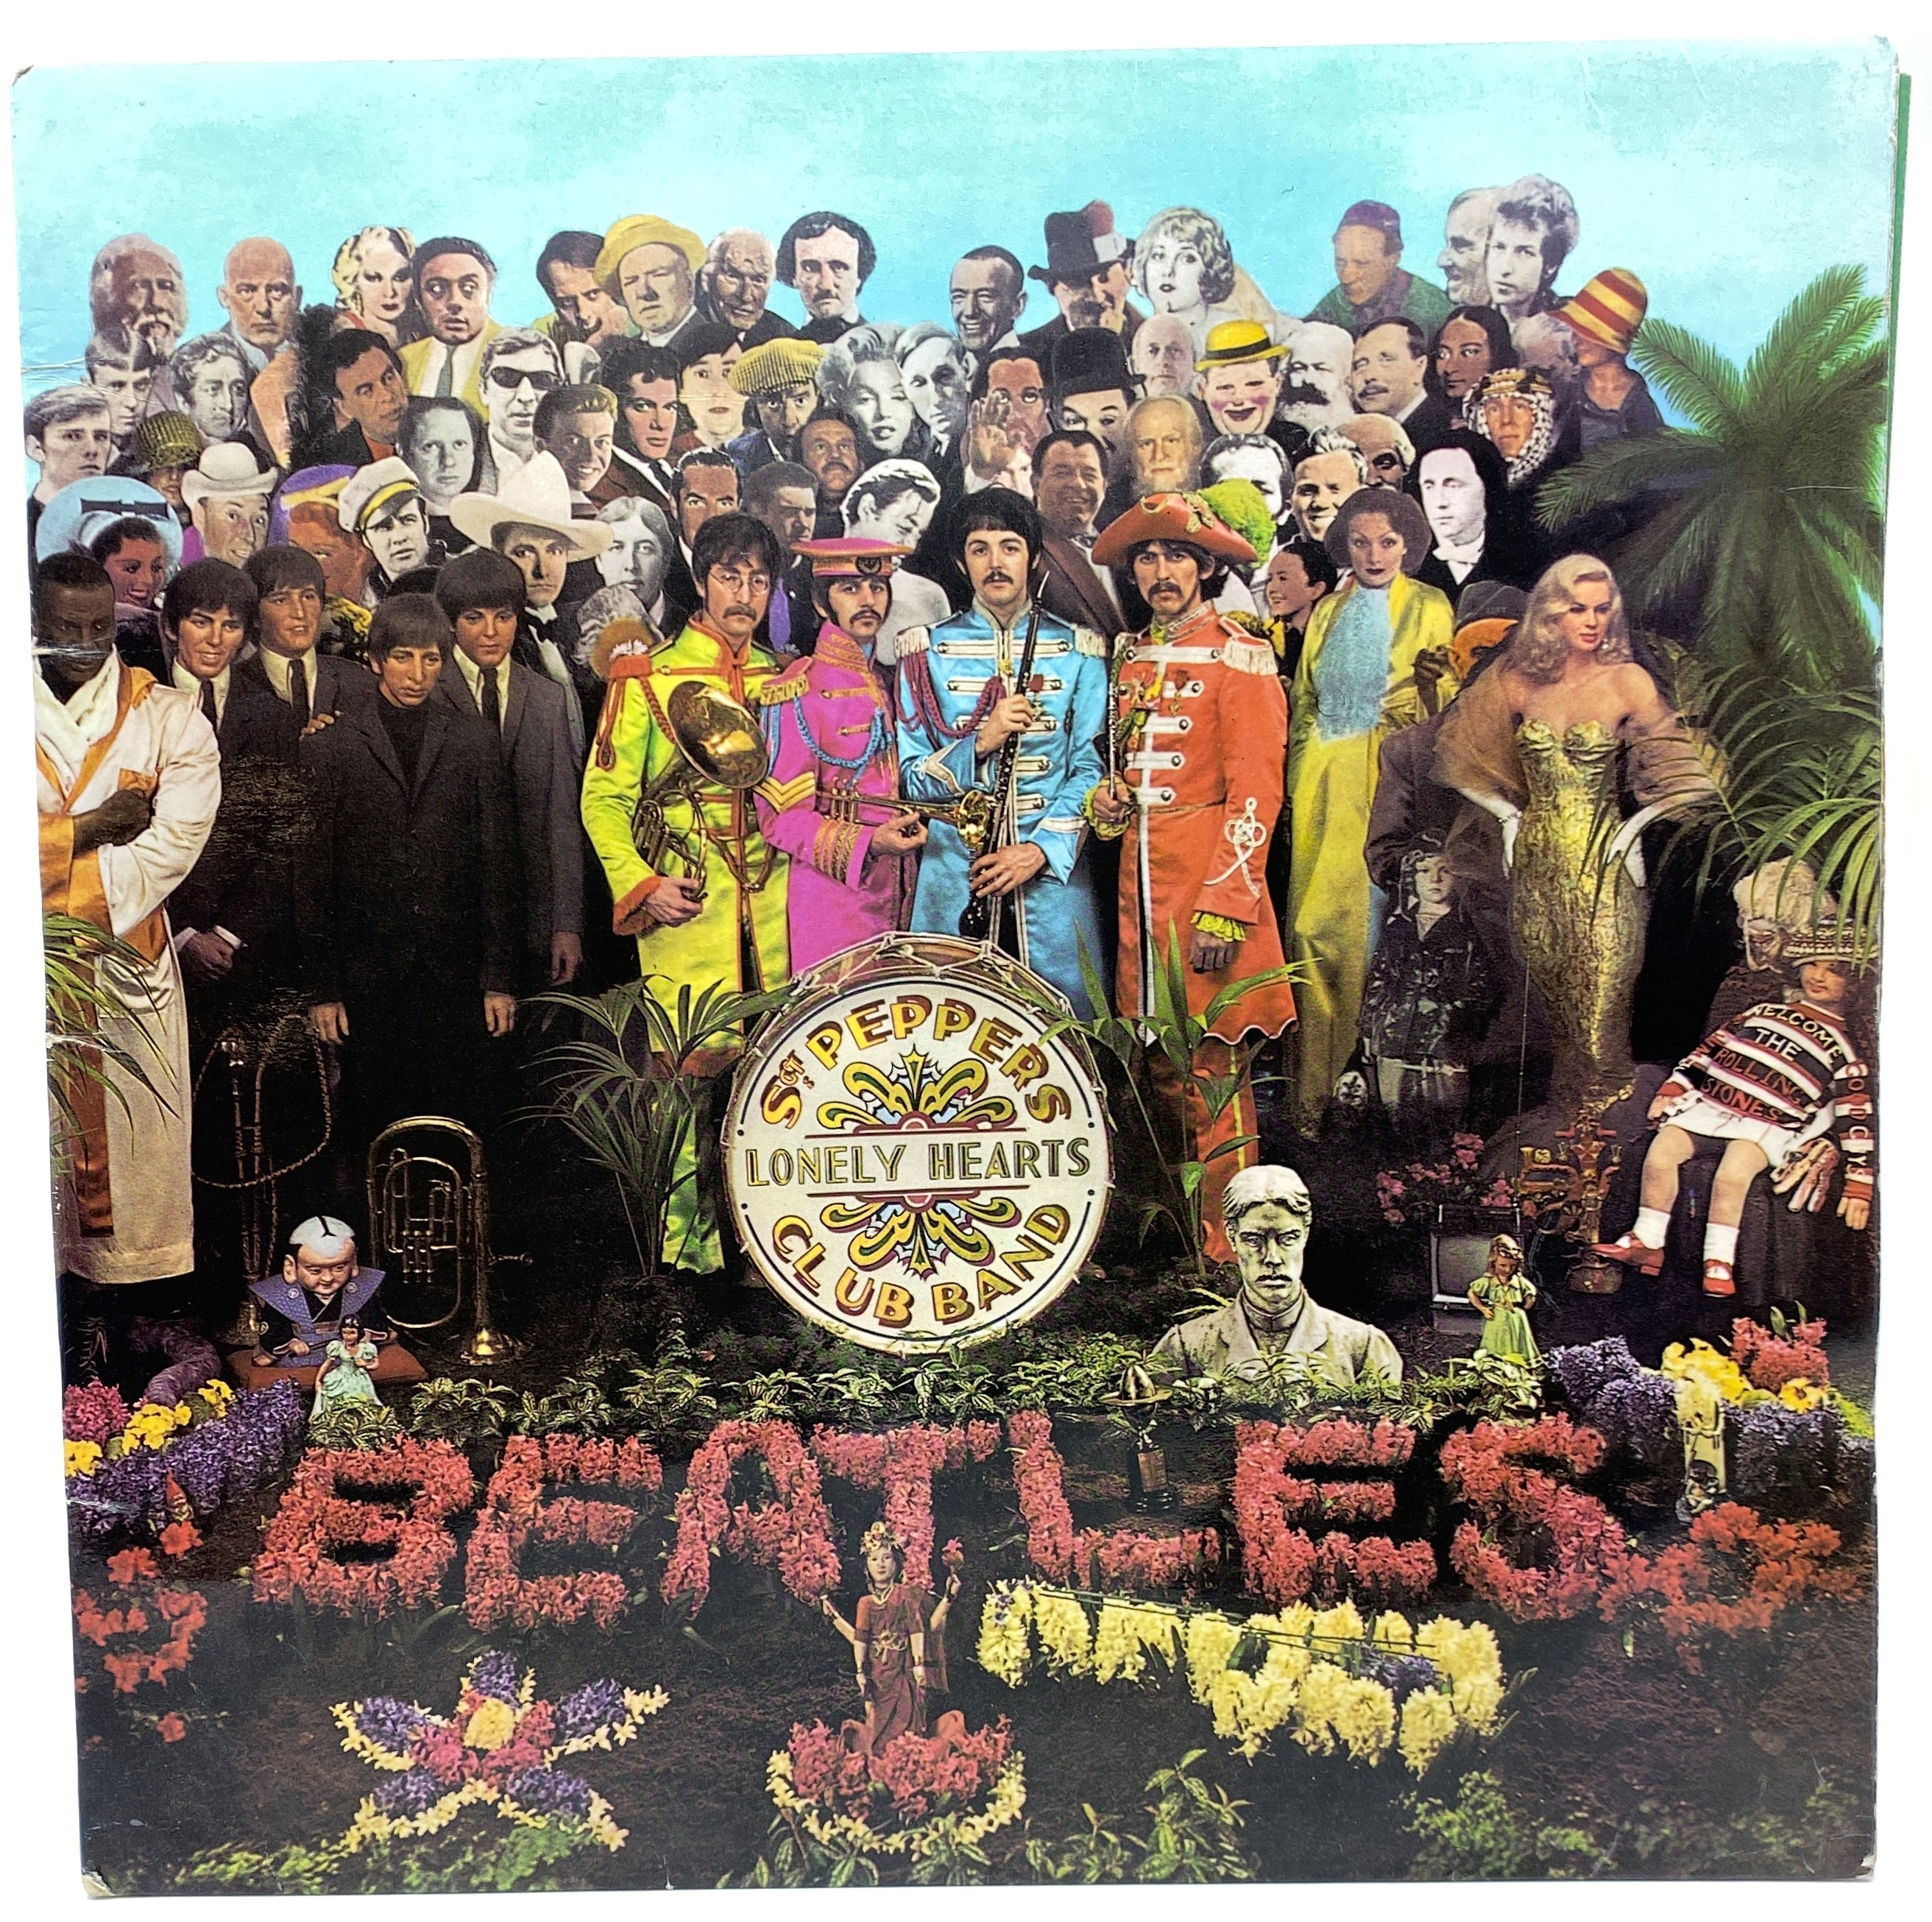 Lot 171 - Beatles LP 'Sgt Pepper's Lonely Hearts Club Band' (PMC 7027 XEX 637(8) -1) mono